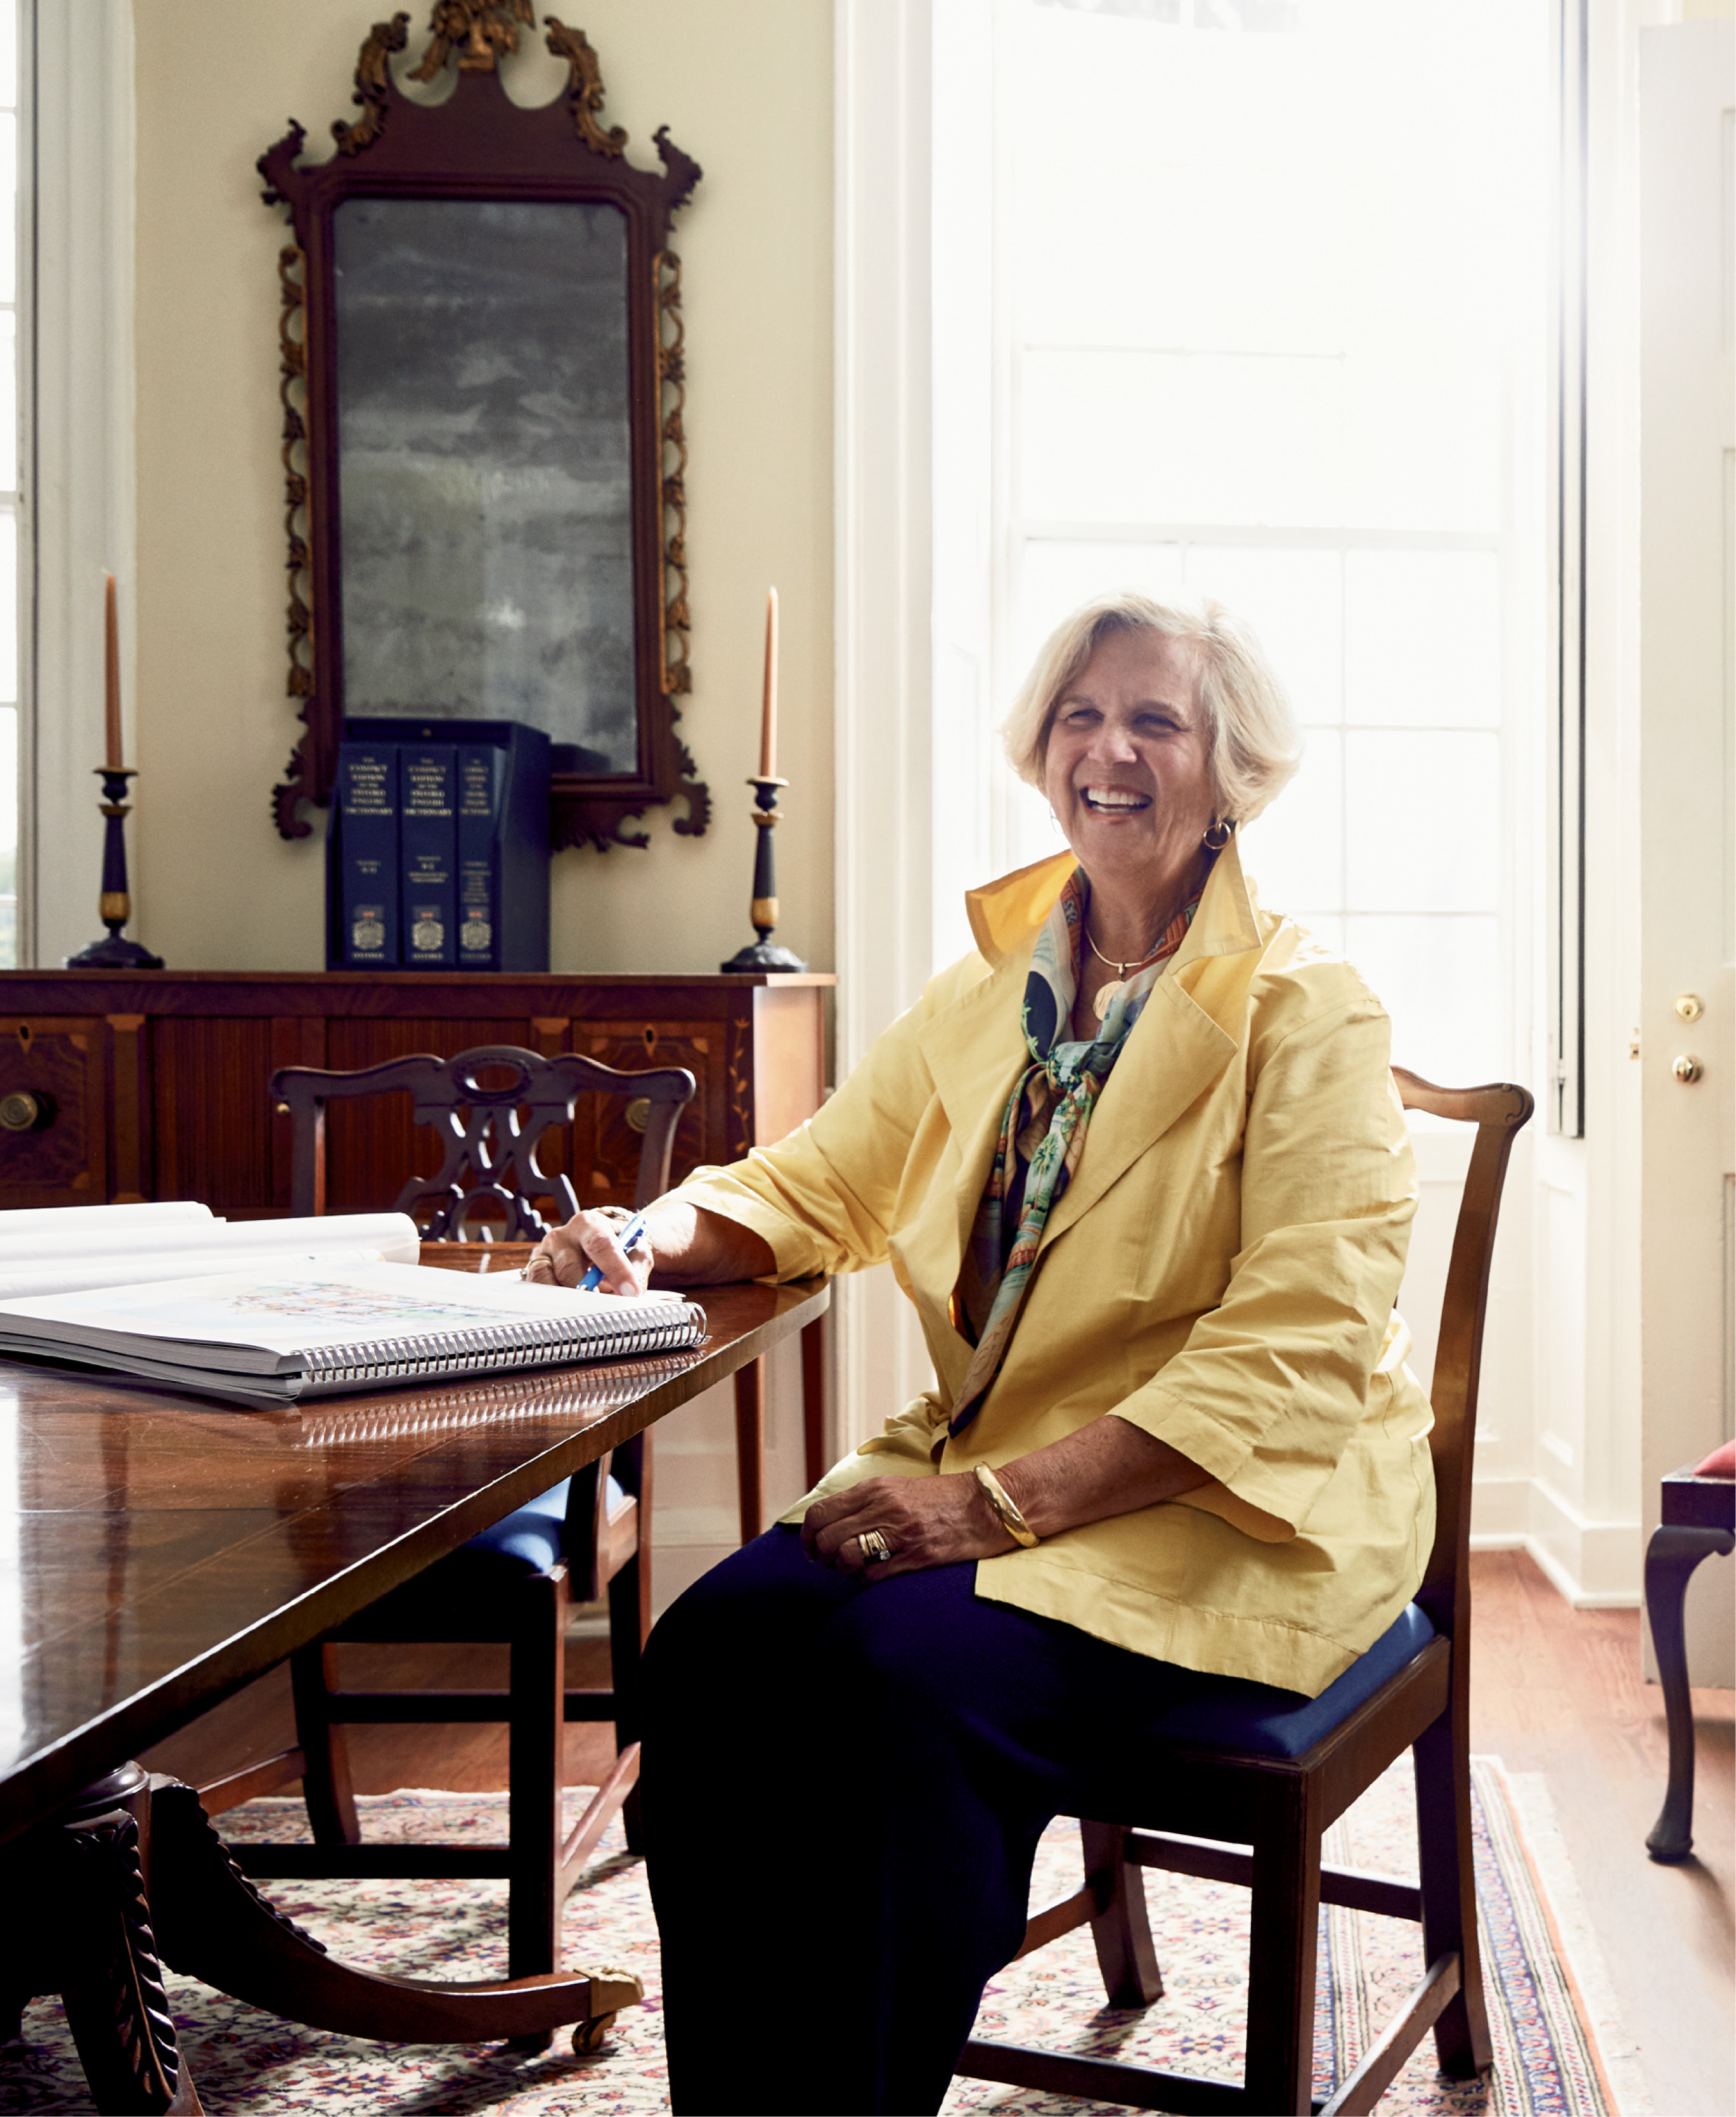 """I don't want the city to lose its character, to be overrun by too many cruise ships, hotels, and visitors. I want Charleston to keep its standards high."" —Kitty Robinson"